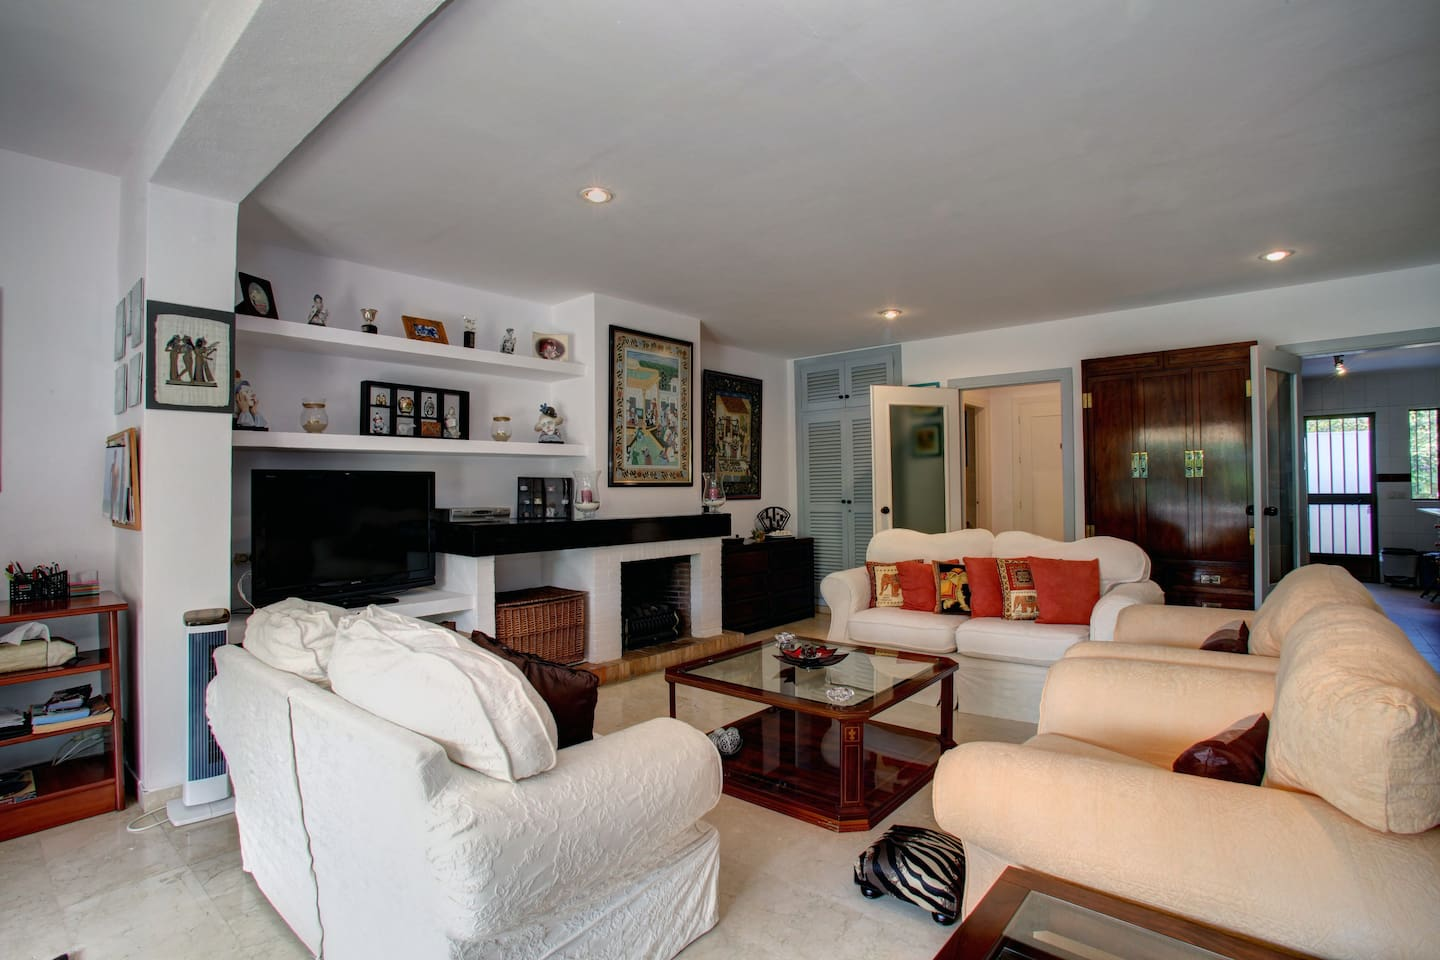 Living room with working fireplace and flat screen tv.